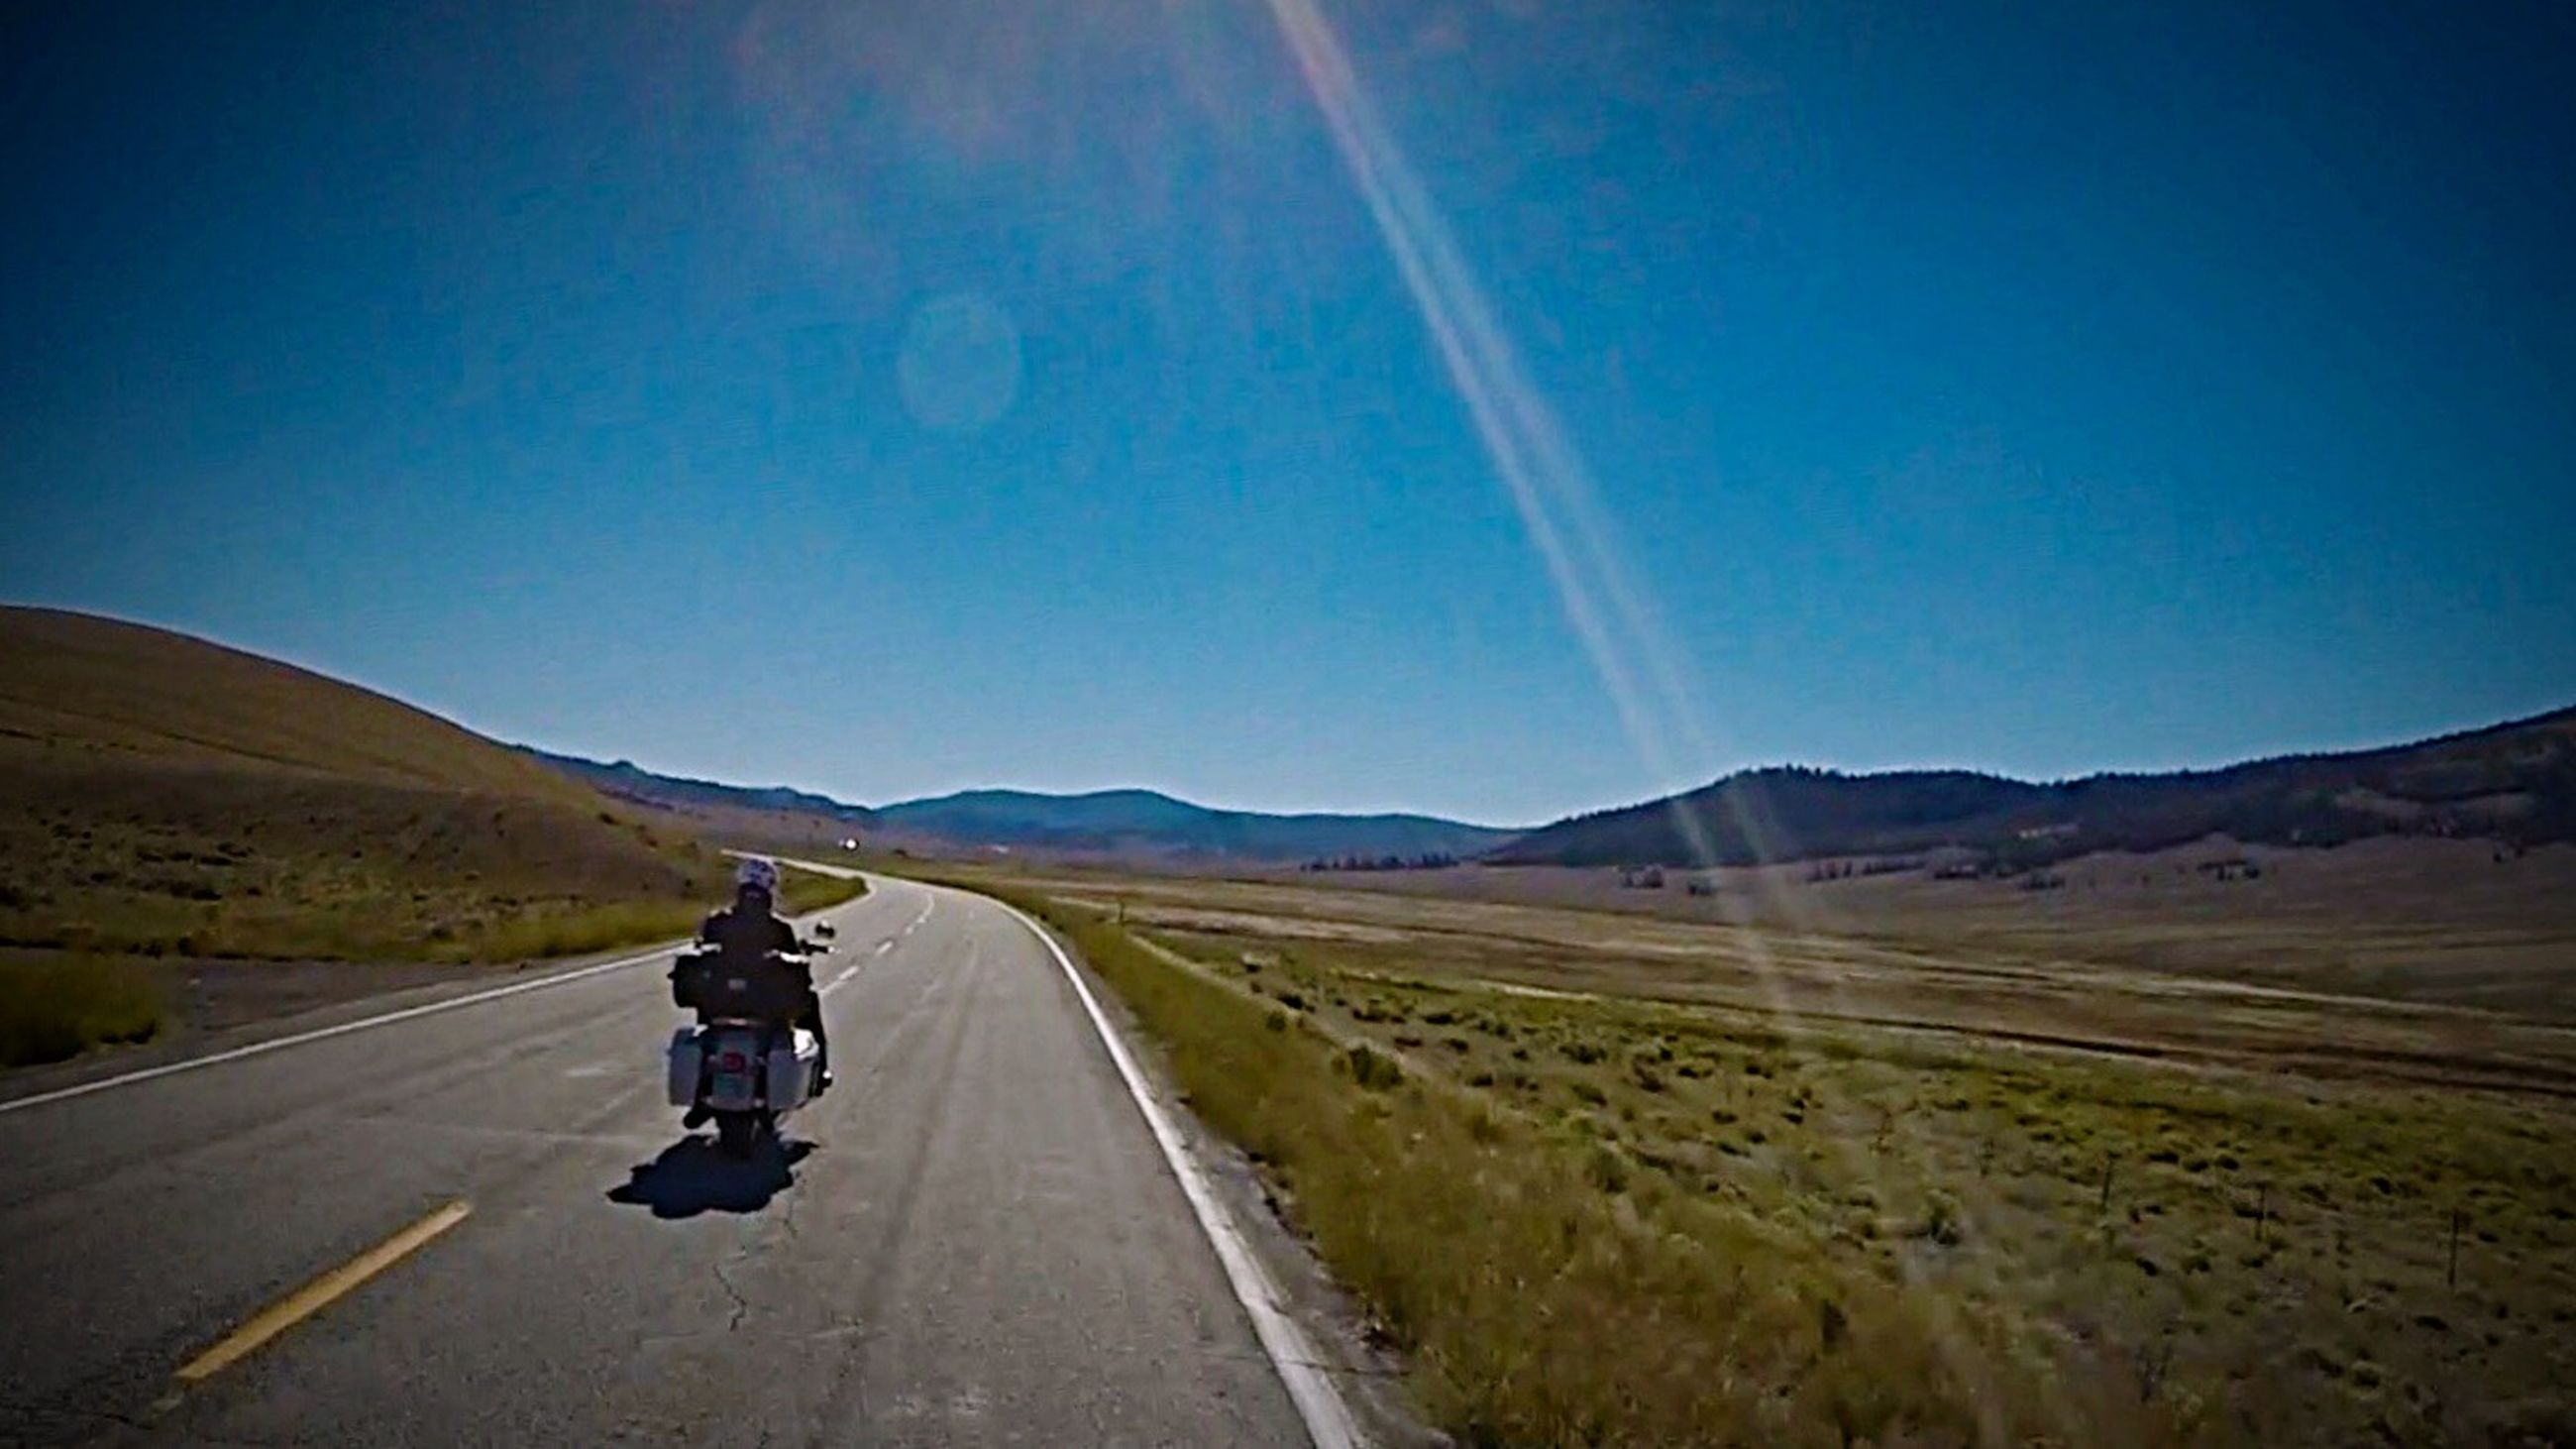 road, landscape, blue, the way forward, motorcycle, individuality, transportation, one man only, outdoors, desert, one person, rear view, scenics, sky, people, beauty in nature, only men, winding road, nature, adults only, adult, day, motorcycle racing